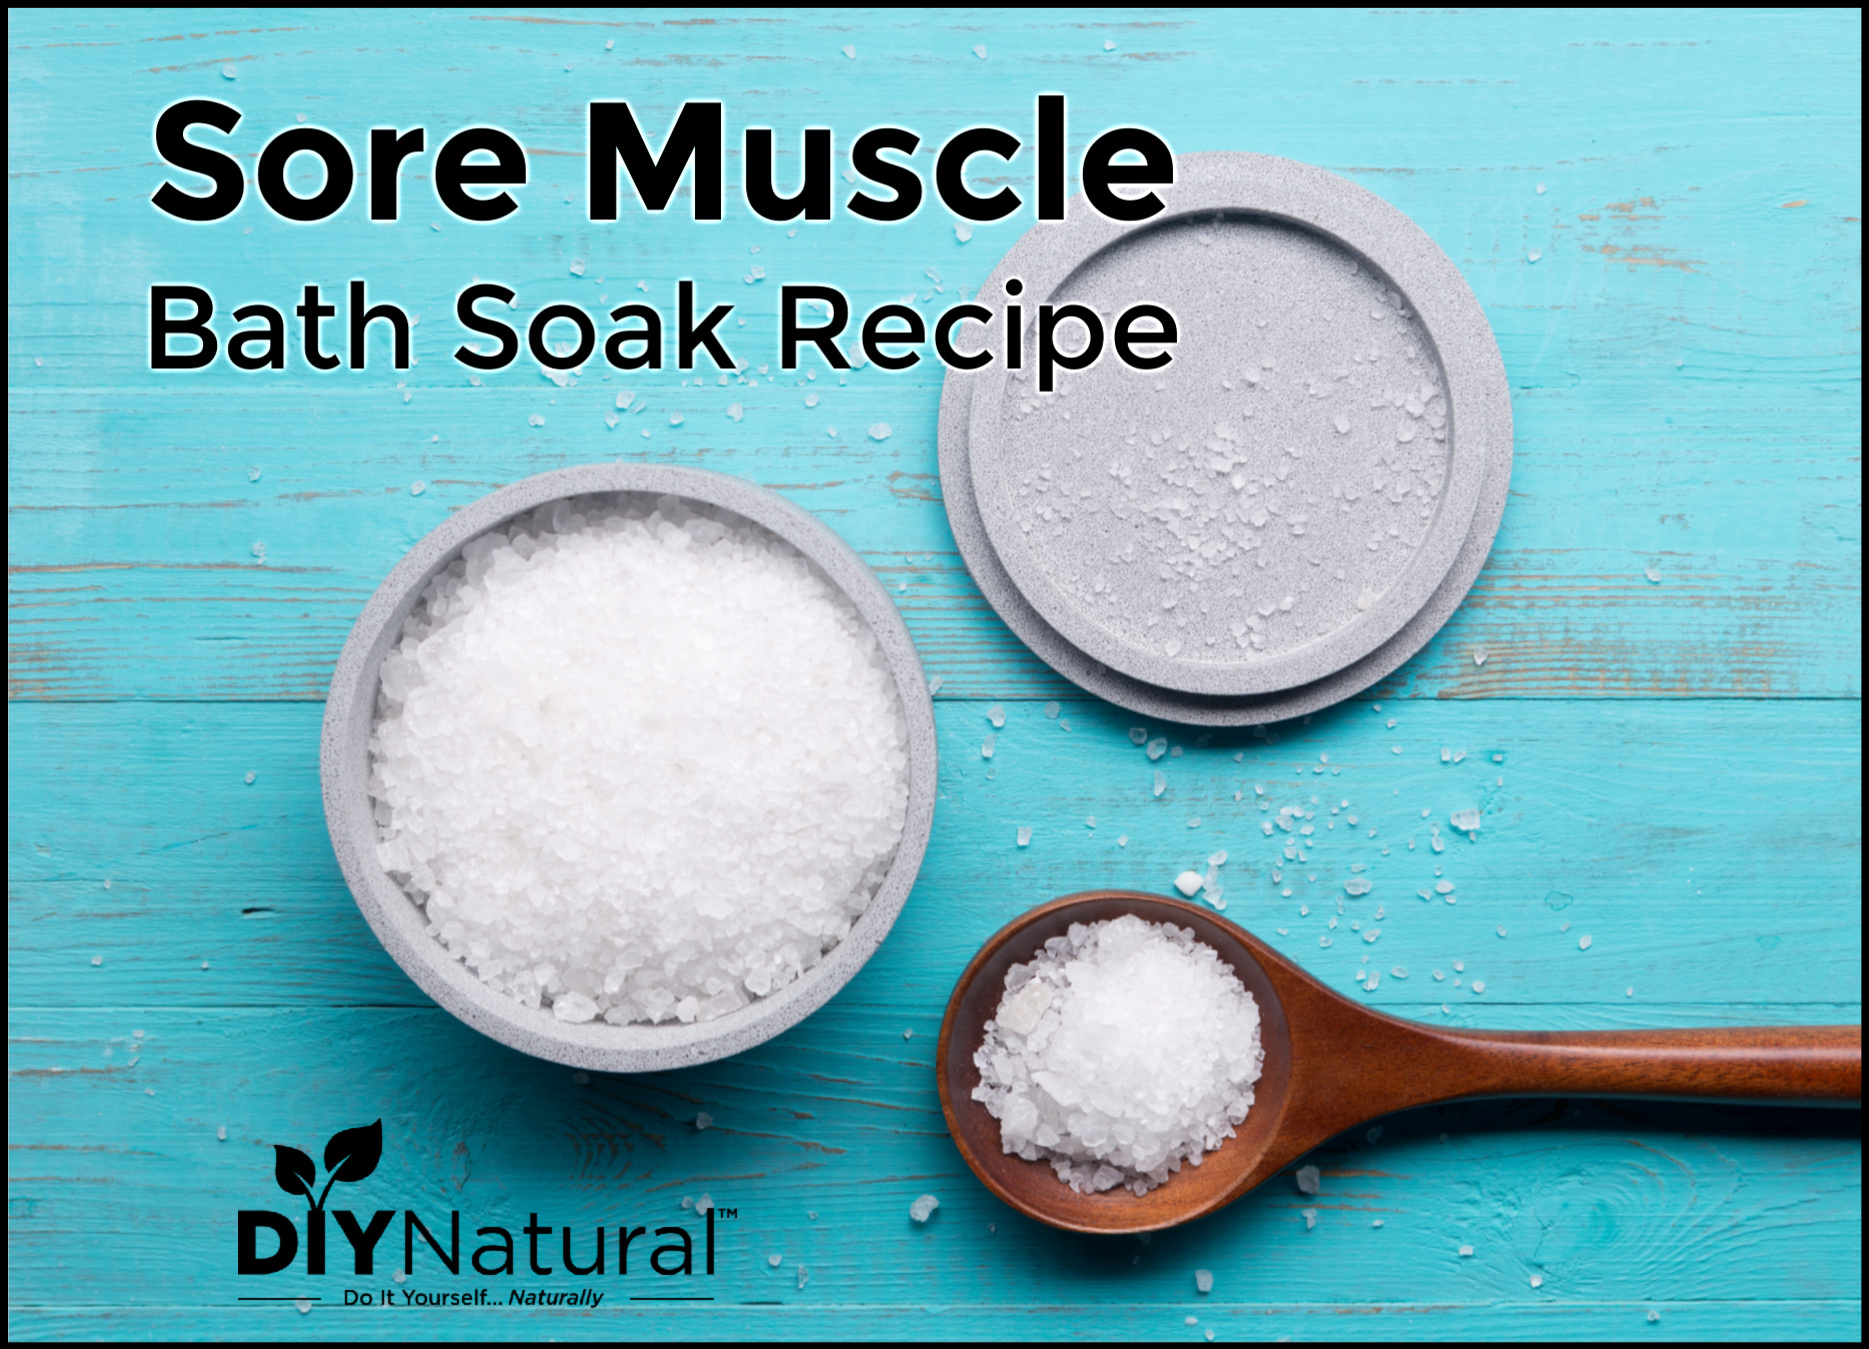 Bath For Sore Muscles: A Soak Recipe To